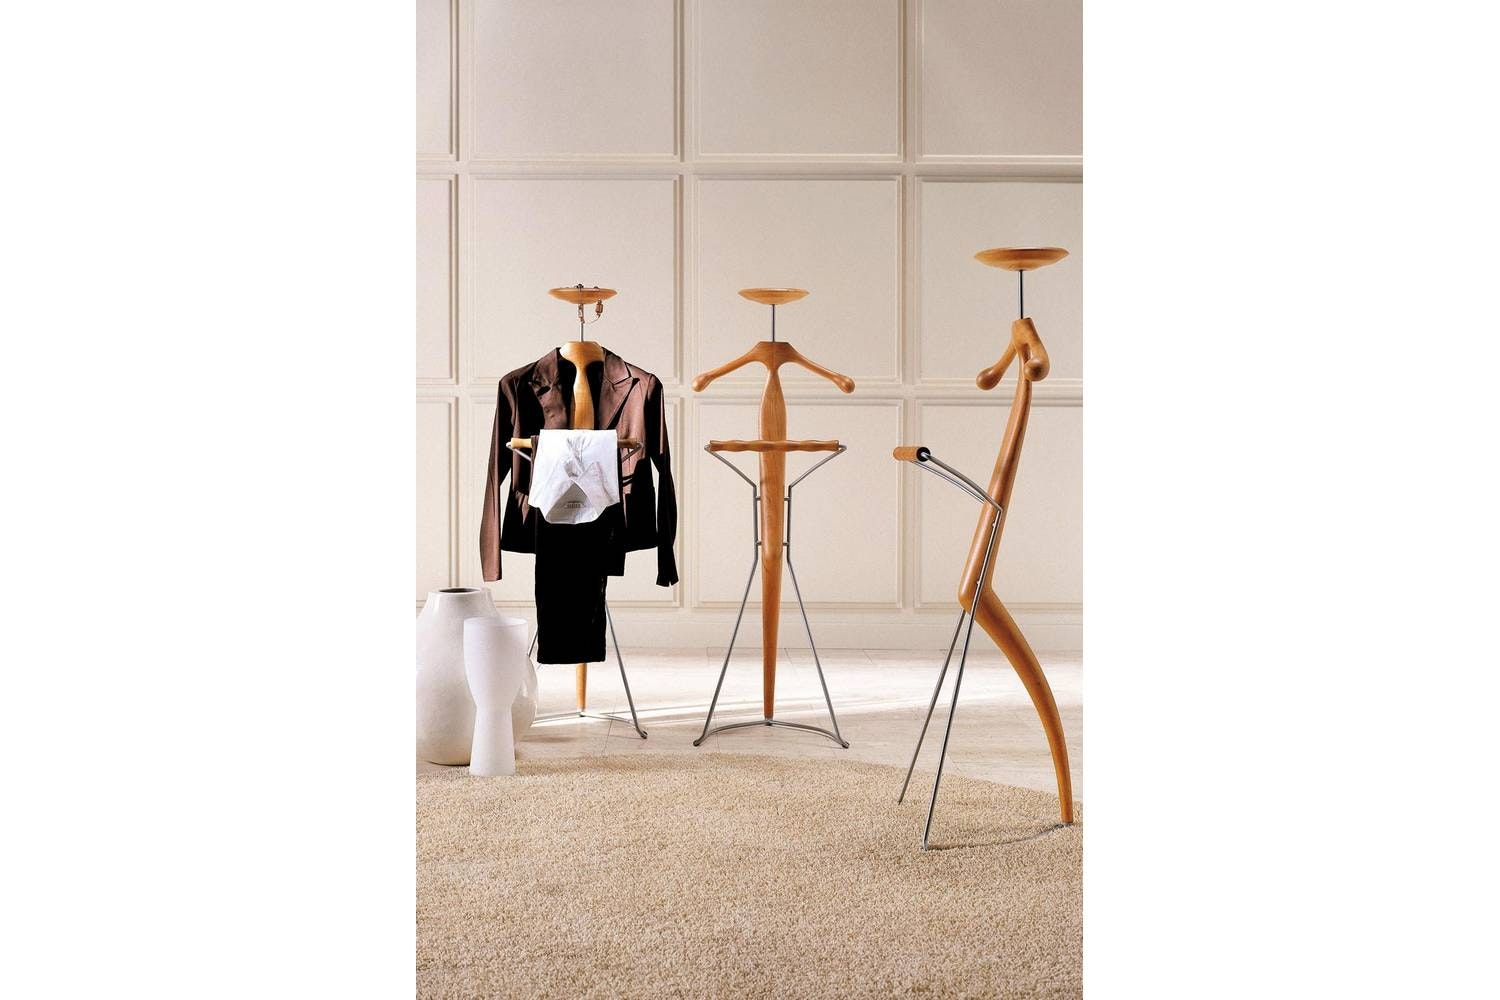 Sir-Bis Coat Rack by M. Marconato - T. Zappa for Porada